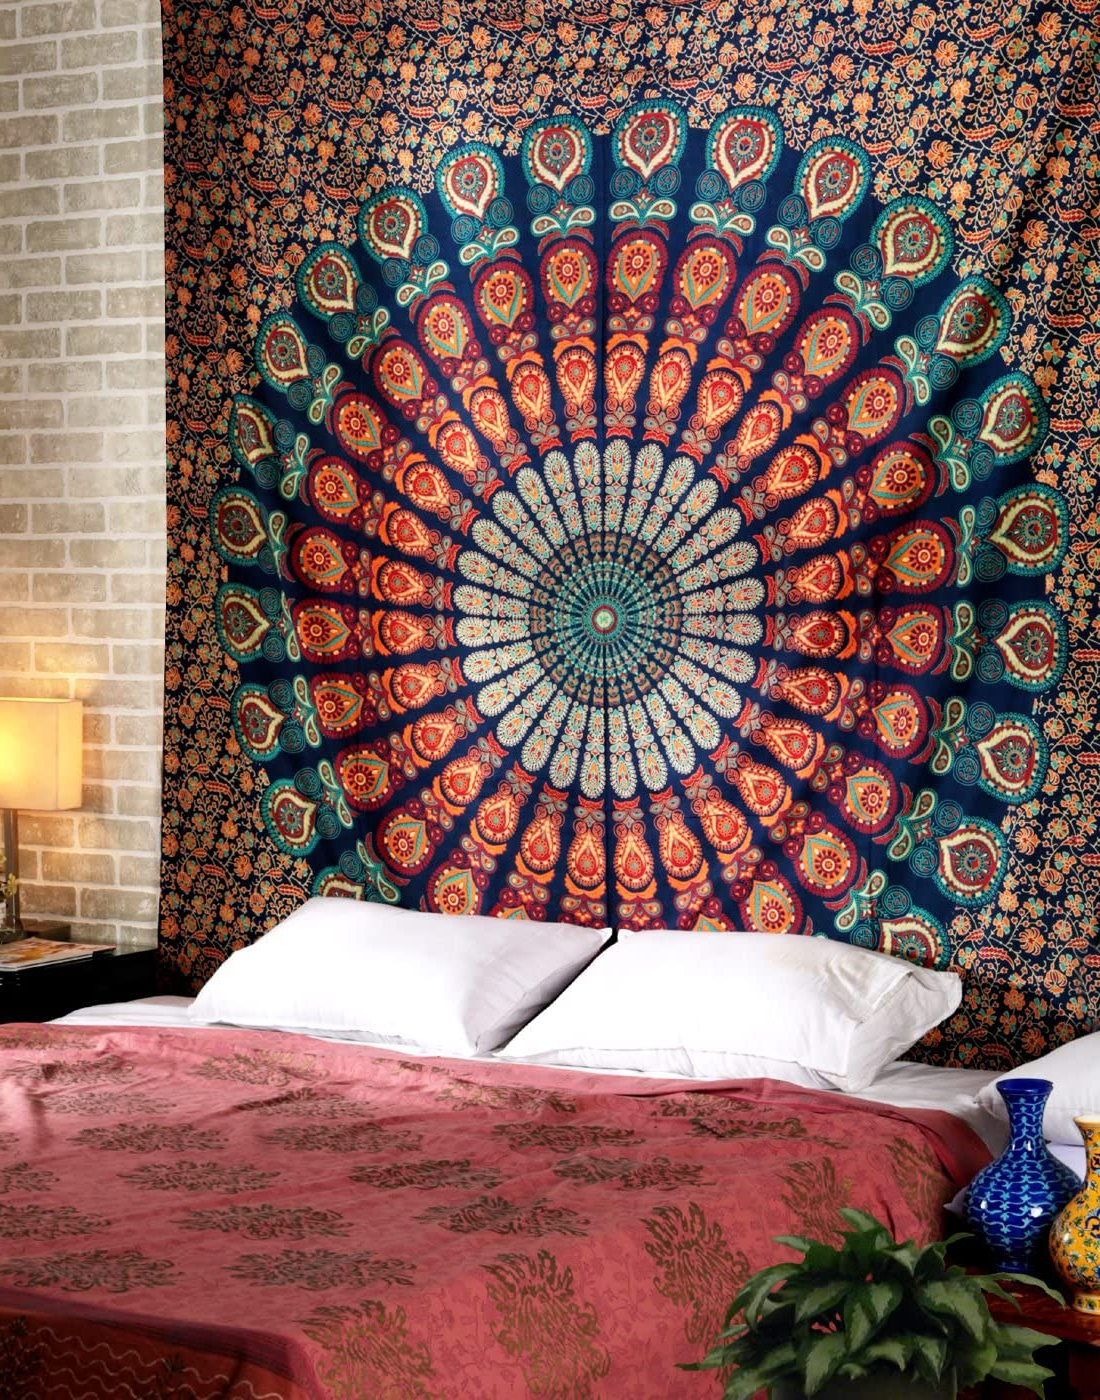 Famous Blended Fabric Peacock European Tapestries For Peacock Mandala Tapestry – Hippie Queen Size Wall Hanging 90x84 Inch Decorative Trippy Tapestries Bohemian Boho Bedding Indian Handmade Pure Cotton (View 5 of 20)